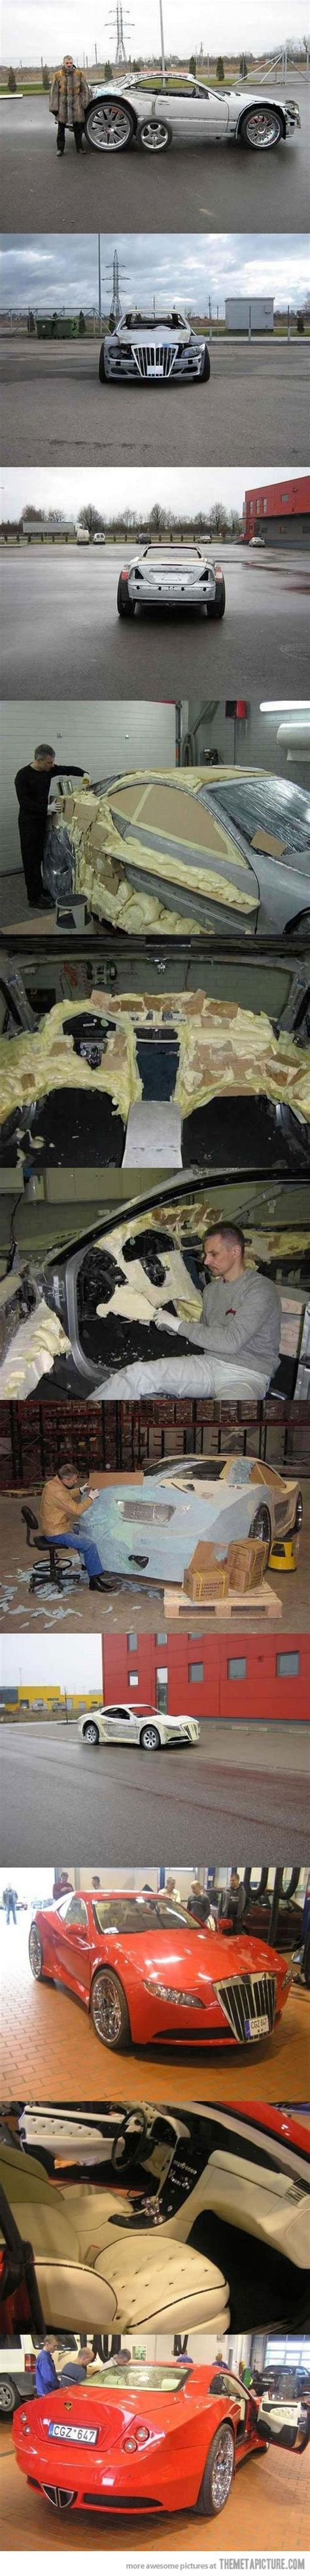 renovating a cer renovating a car like a boss the meta picture